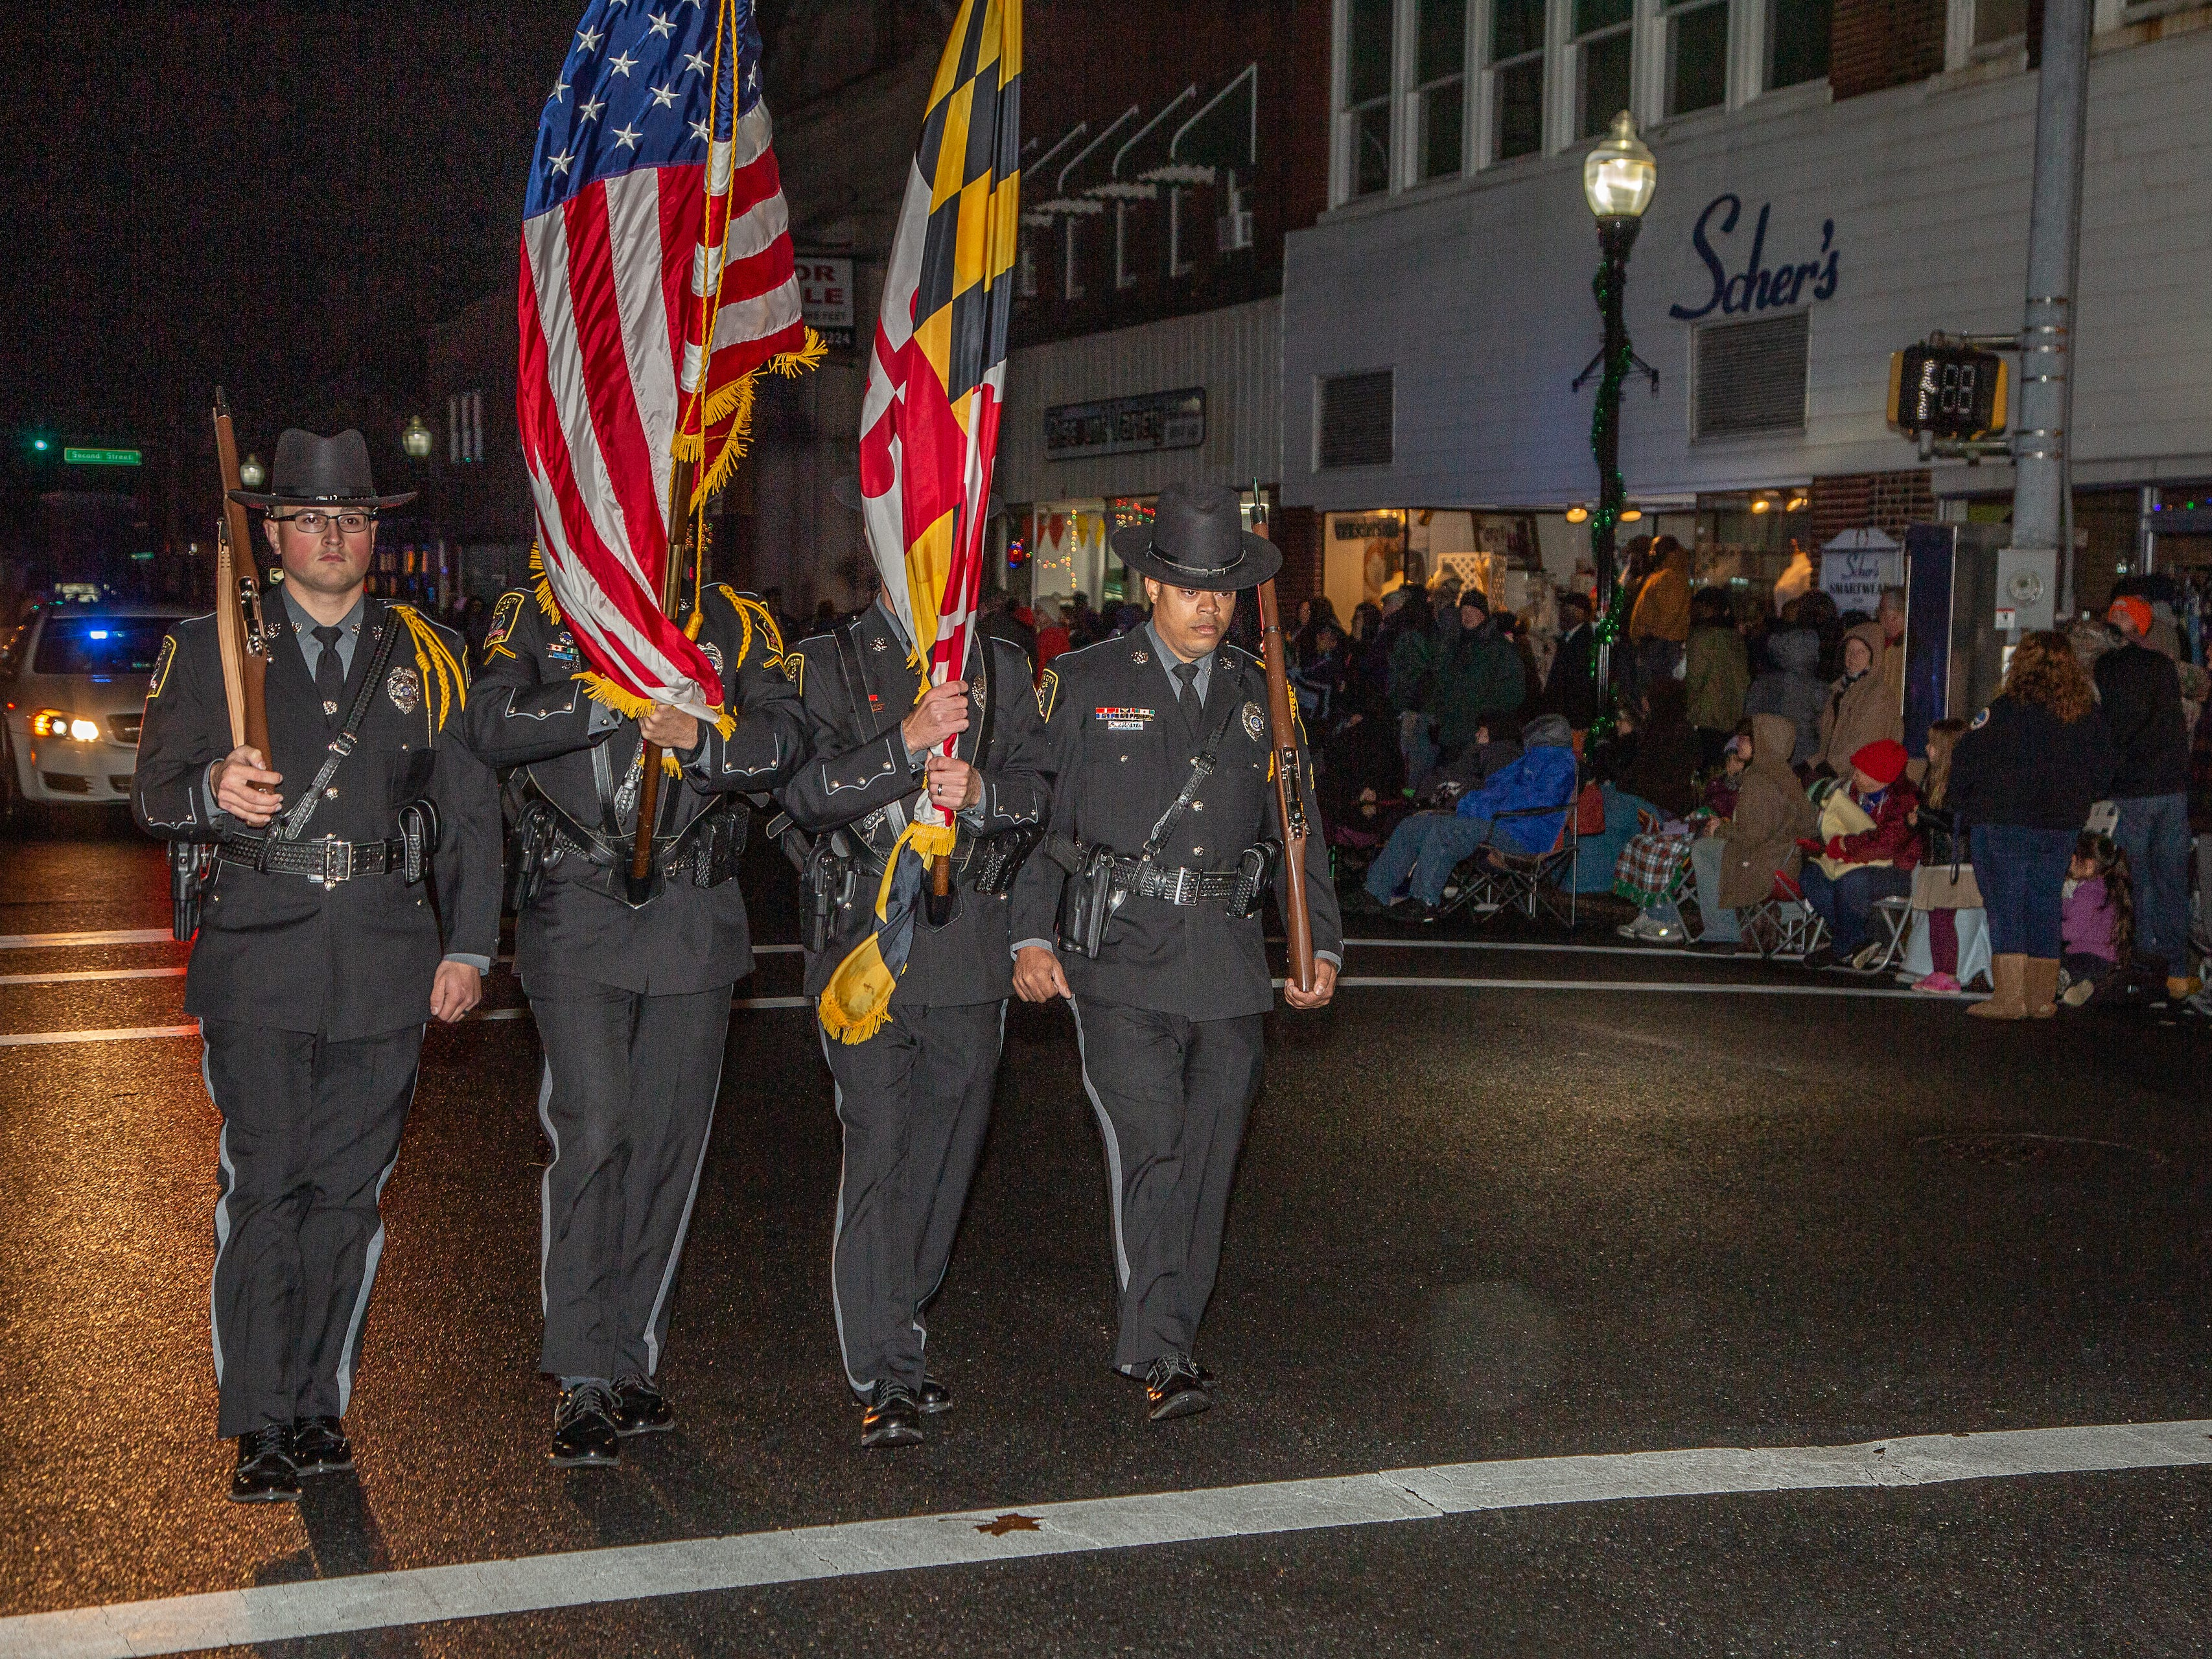 Pocomoke City Police Honor Guard marches in the town's Christmas parade.